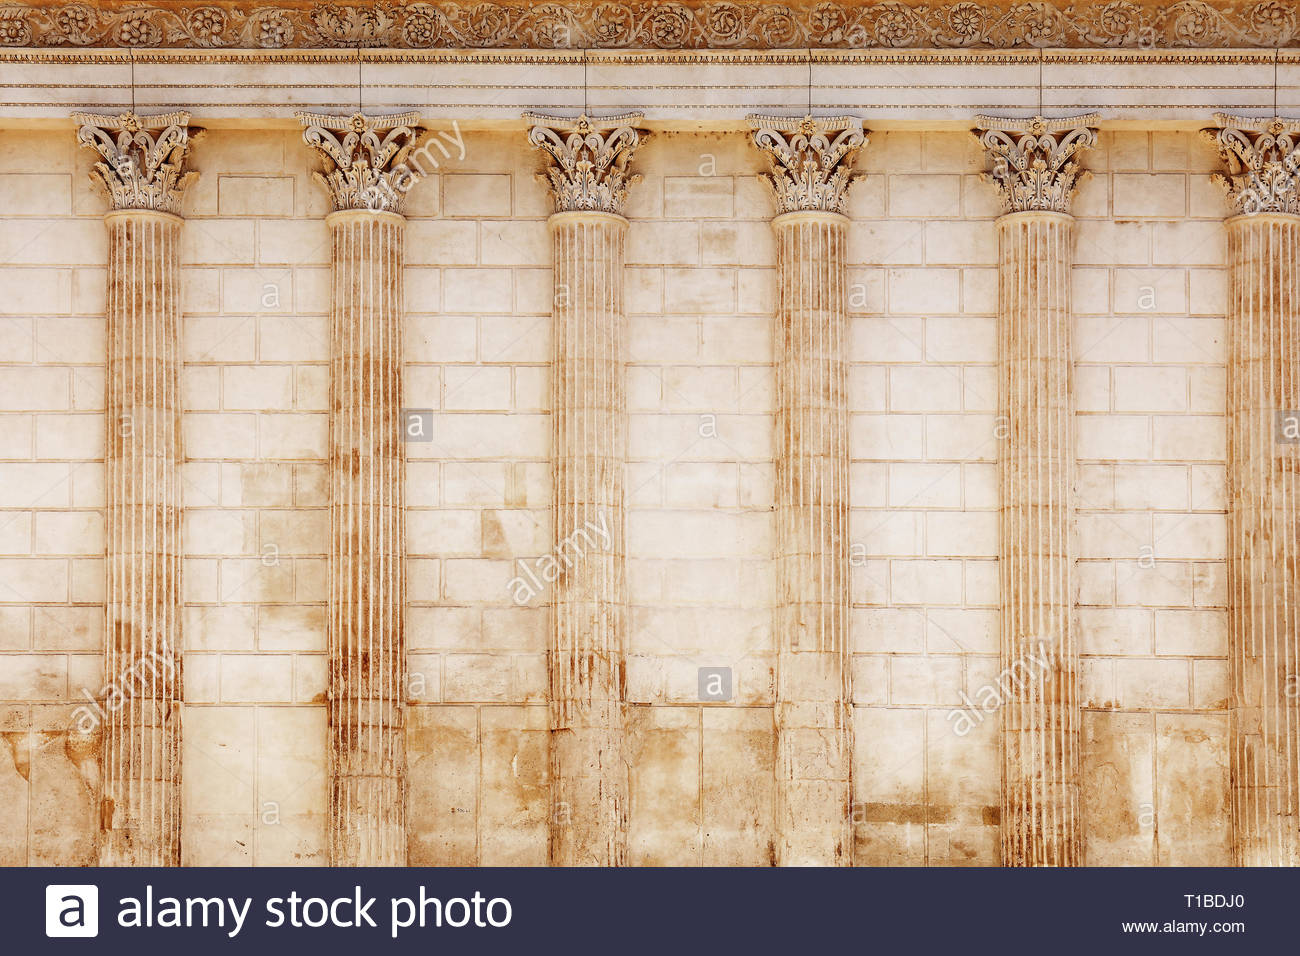 Background of antique Roman temple wall with Corinthian columns of 1300x956